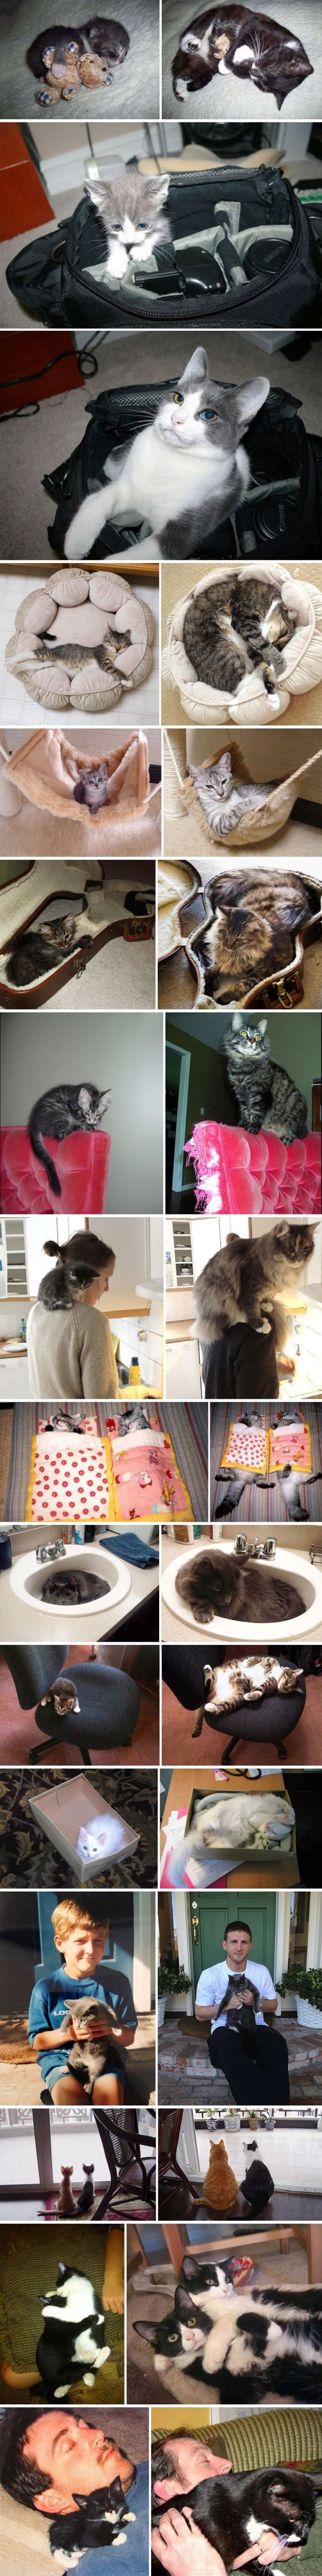 cats-before-after-growing-up